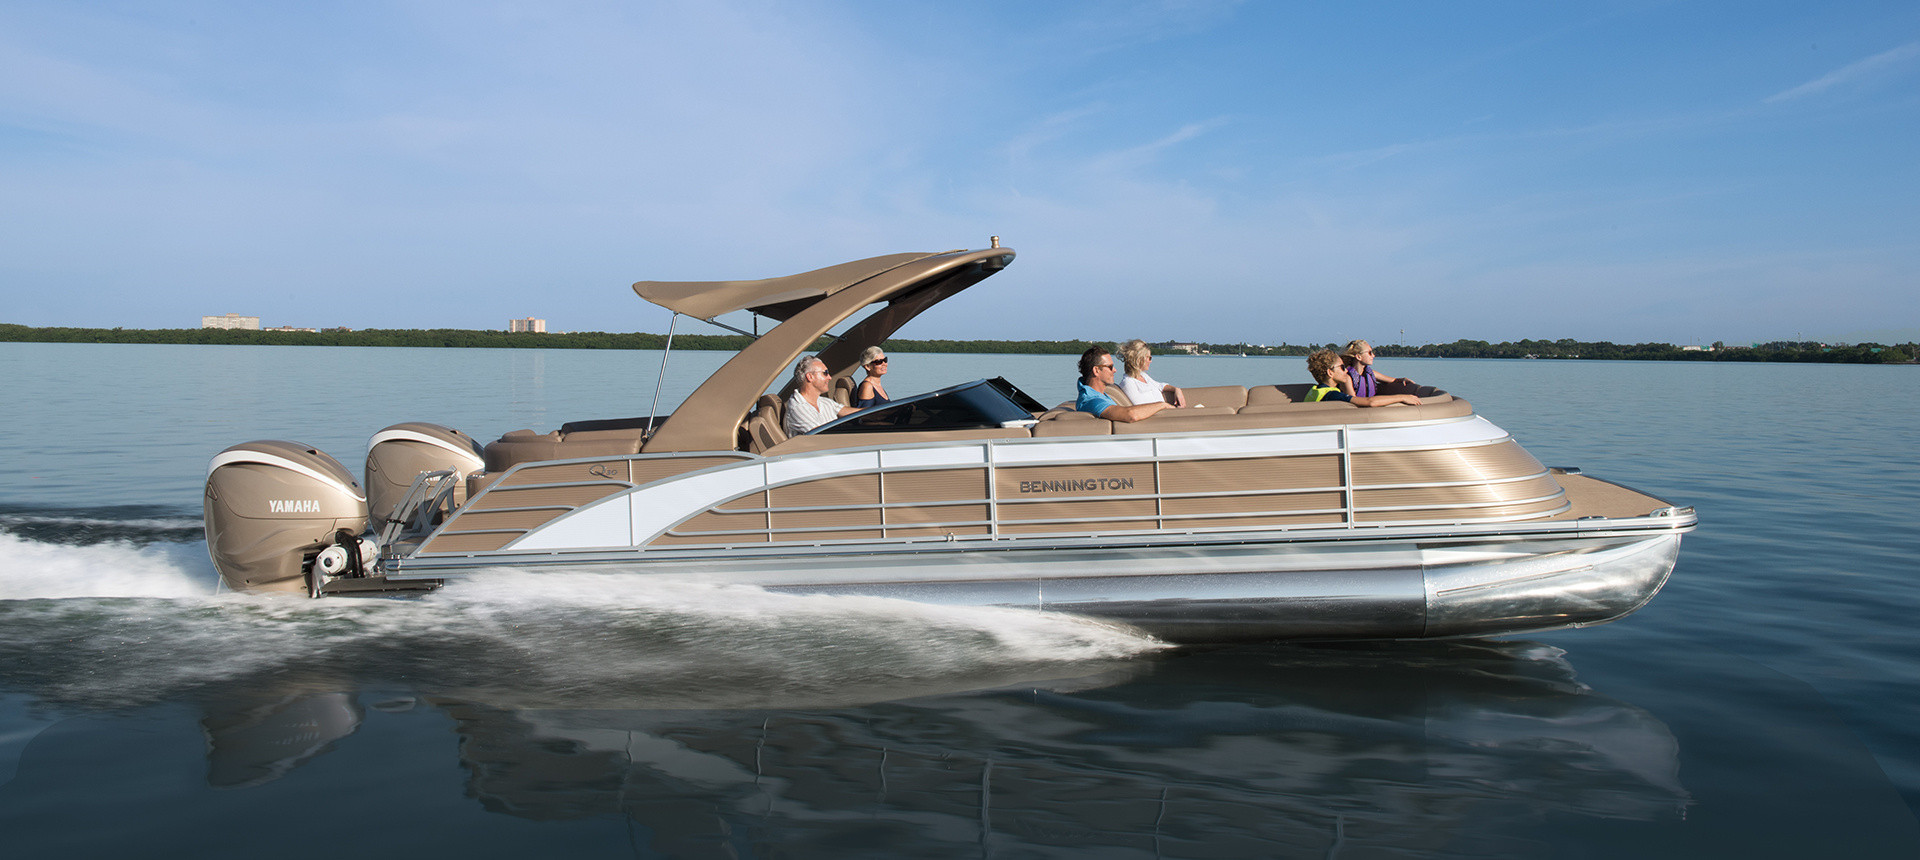 Pic of rear deck of Q model boat